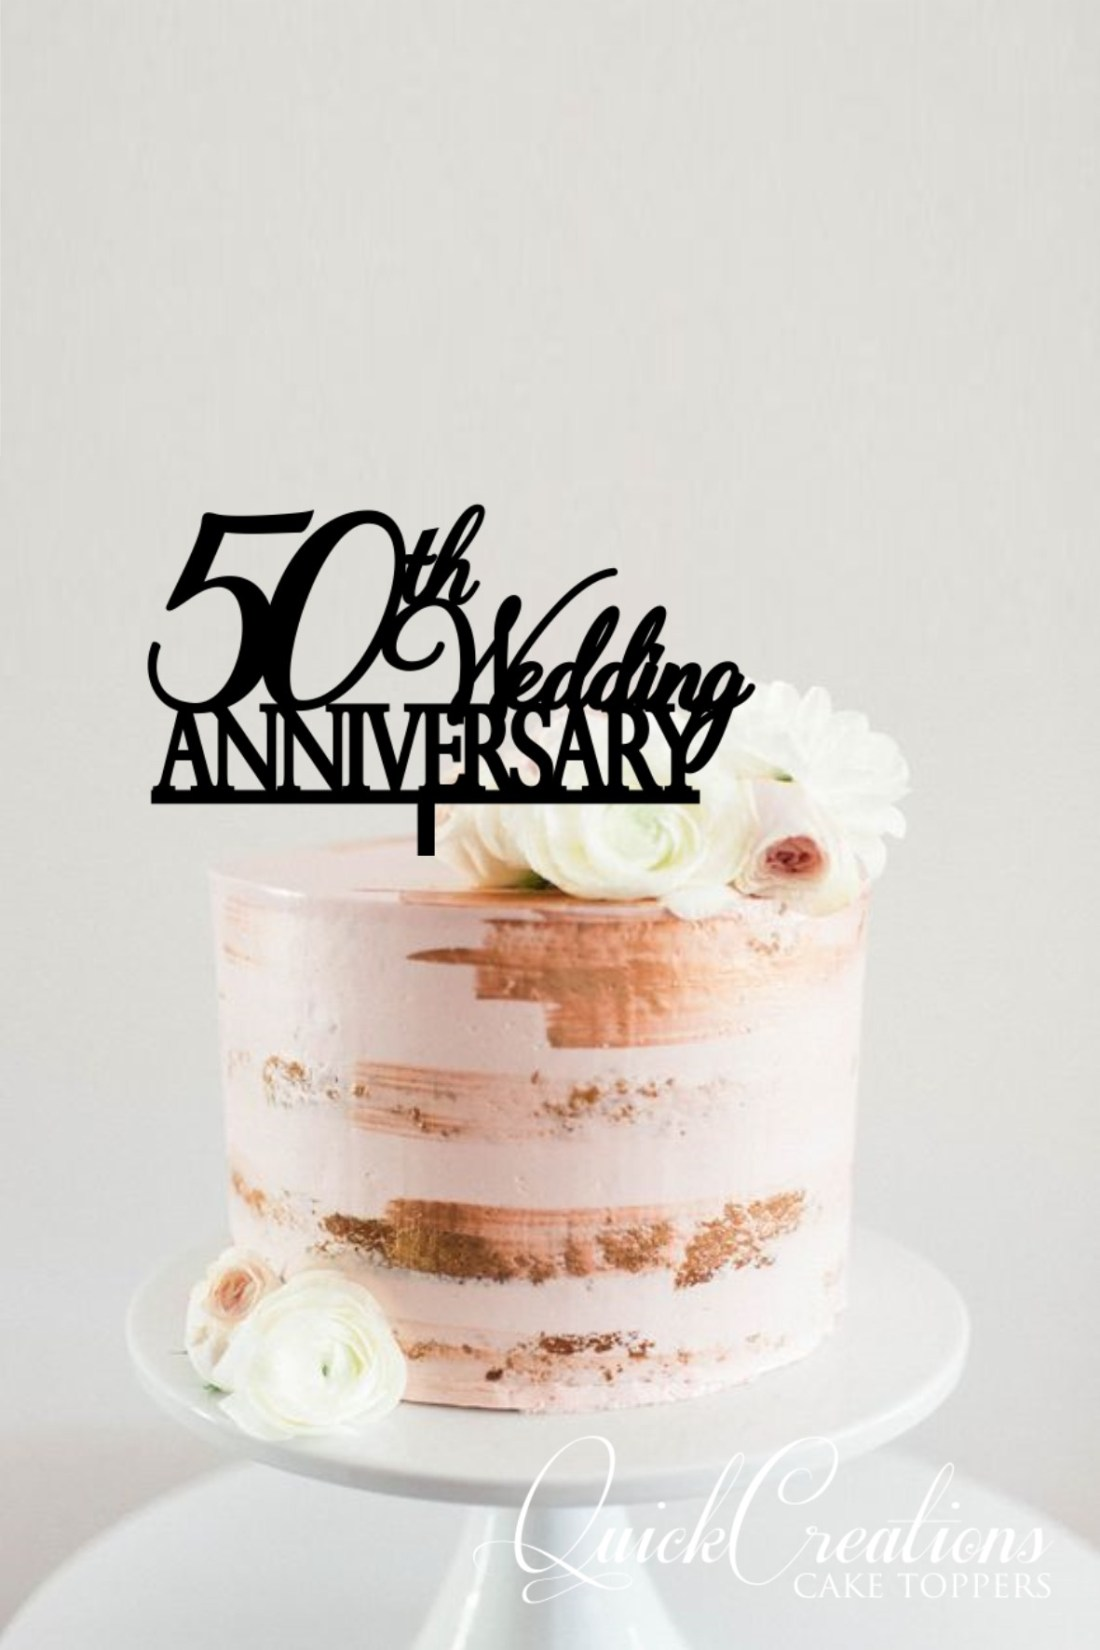 Quick Creations Cake Topper - 50th Wedding Anniversary